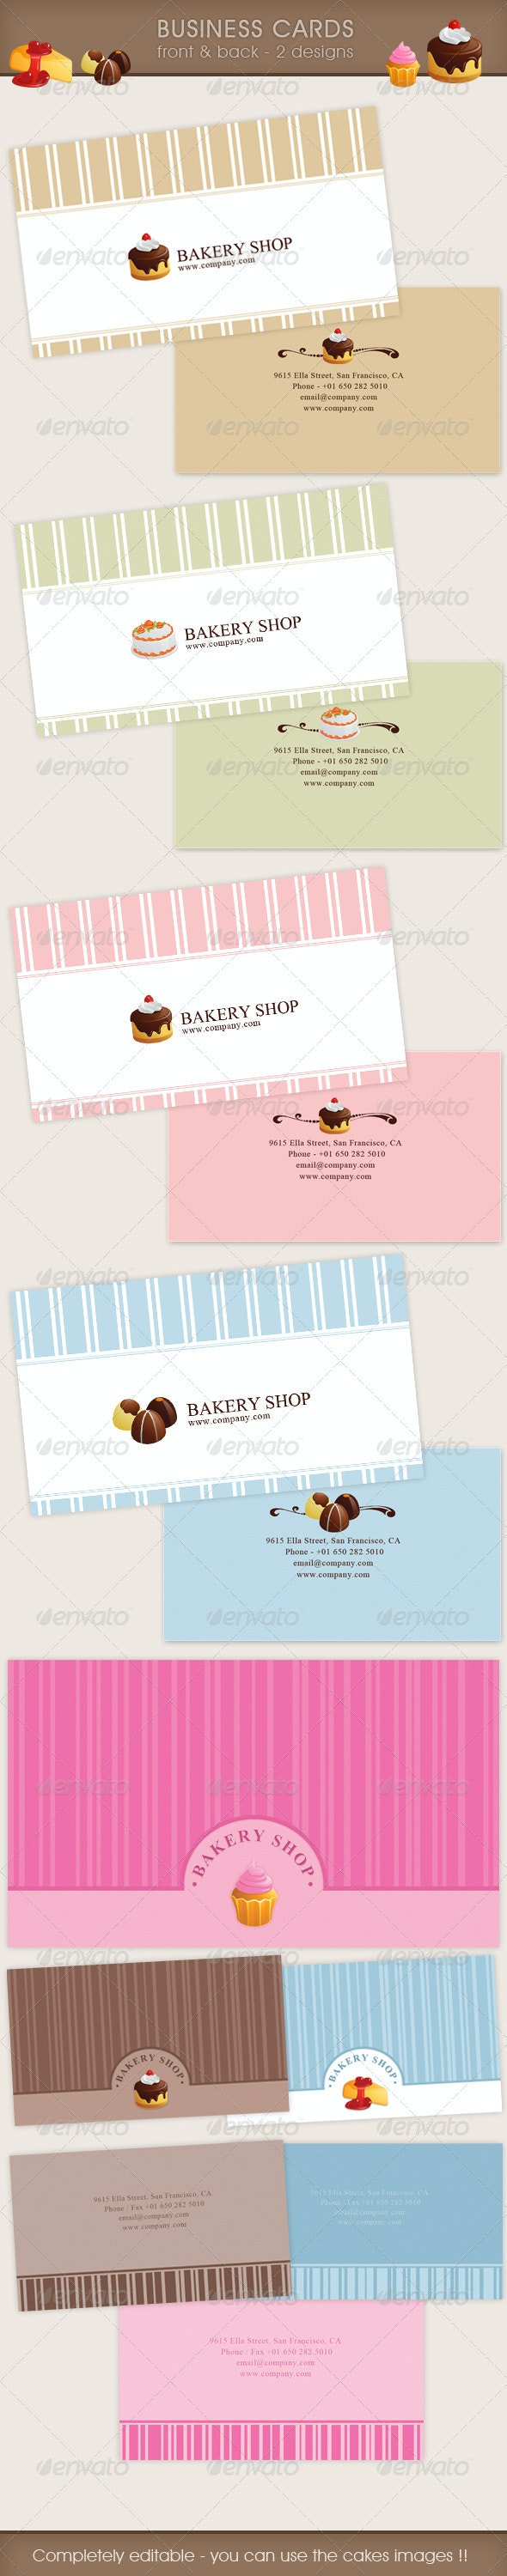 Bakery Business Card Irresistible 2 designs  - Industry Specific Business Cards